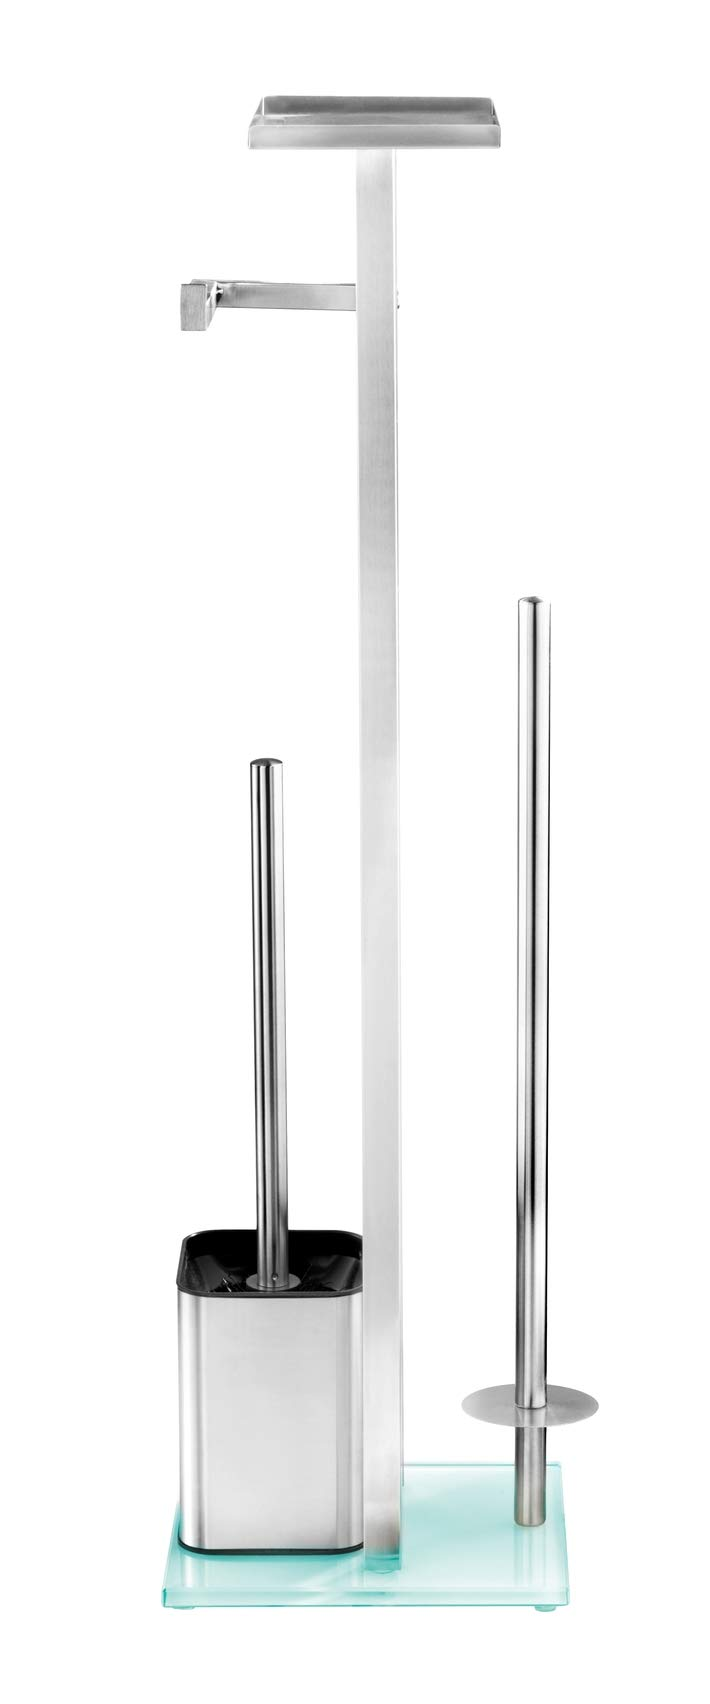 WENKO 23364100 Freestanding Toilet Brush with Rack Debar 8.3 x 27.8 x 7.1 inch Satinised